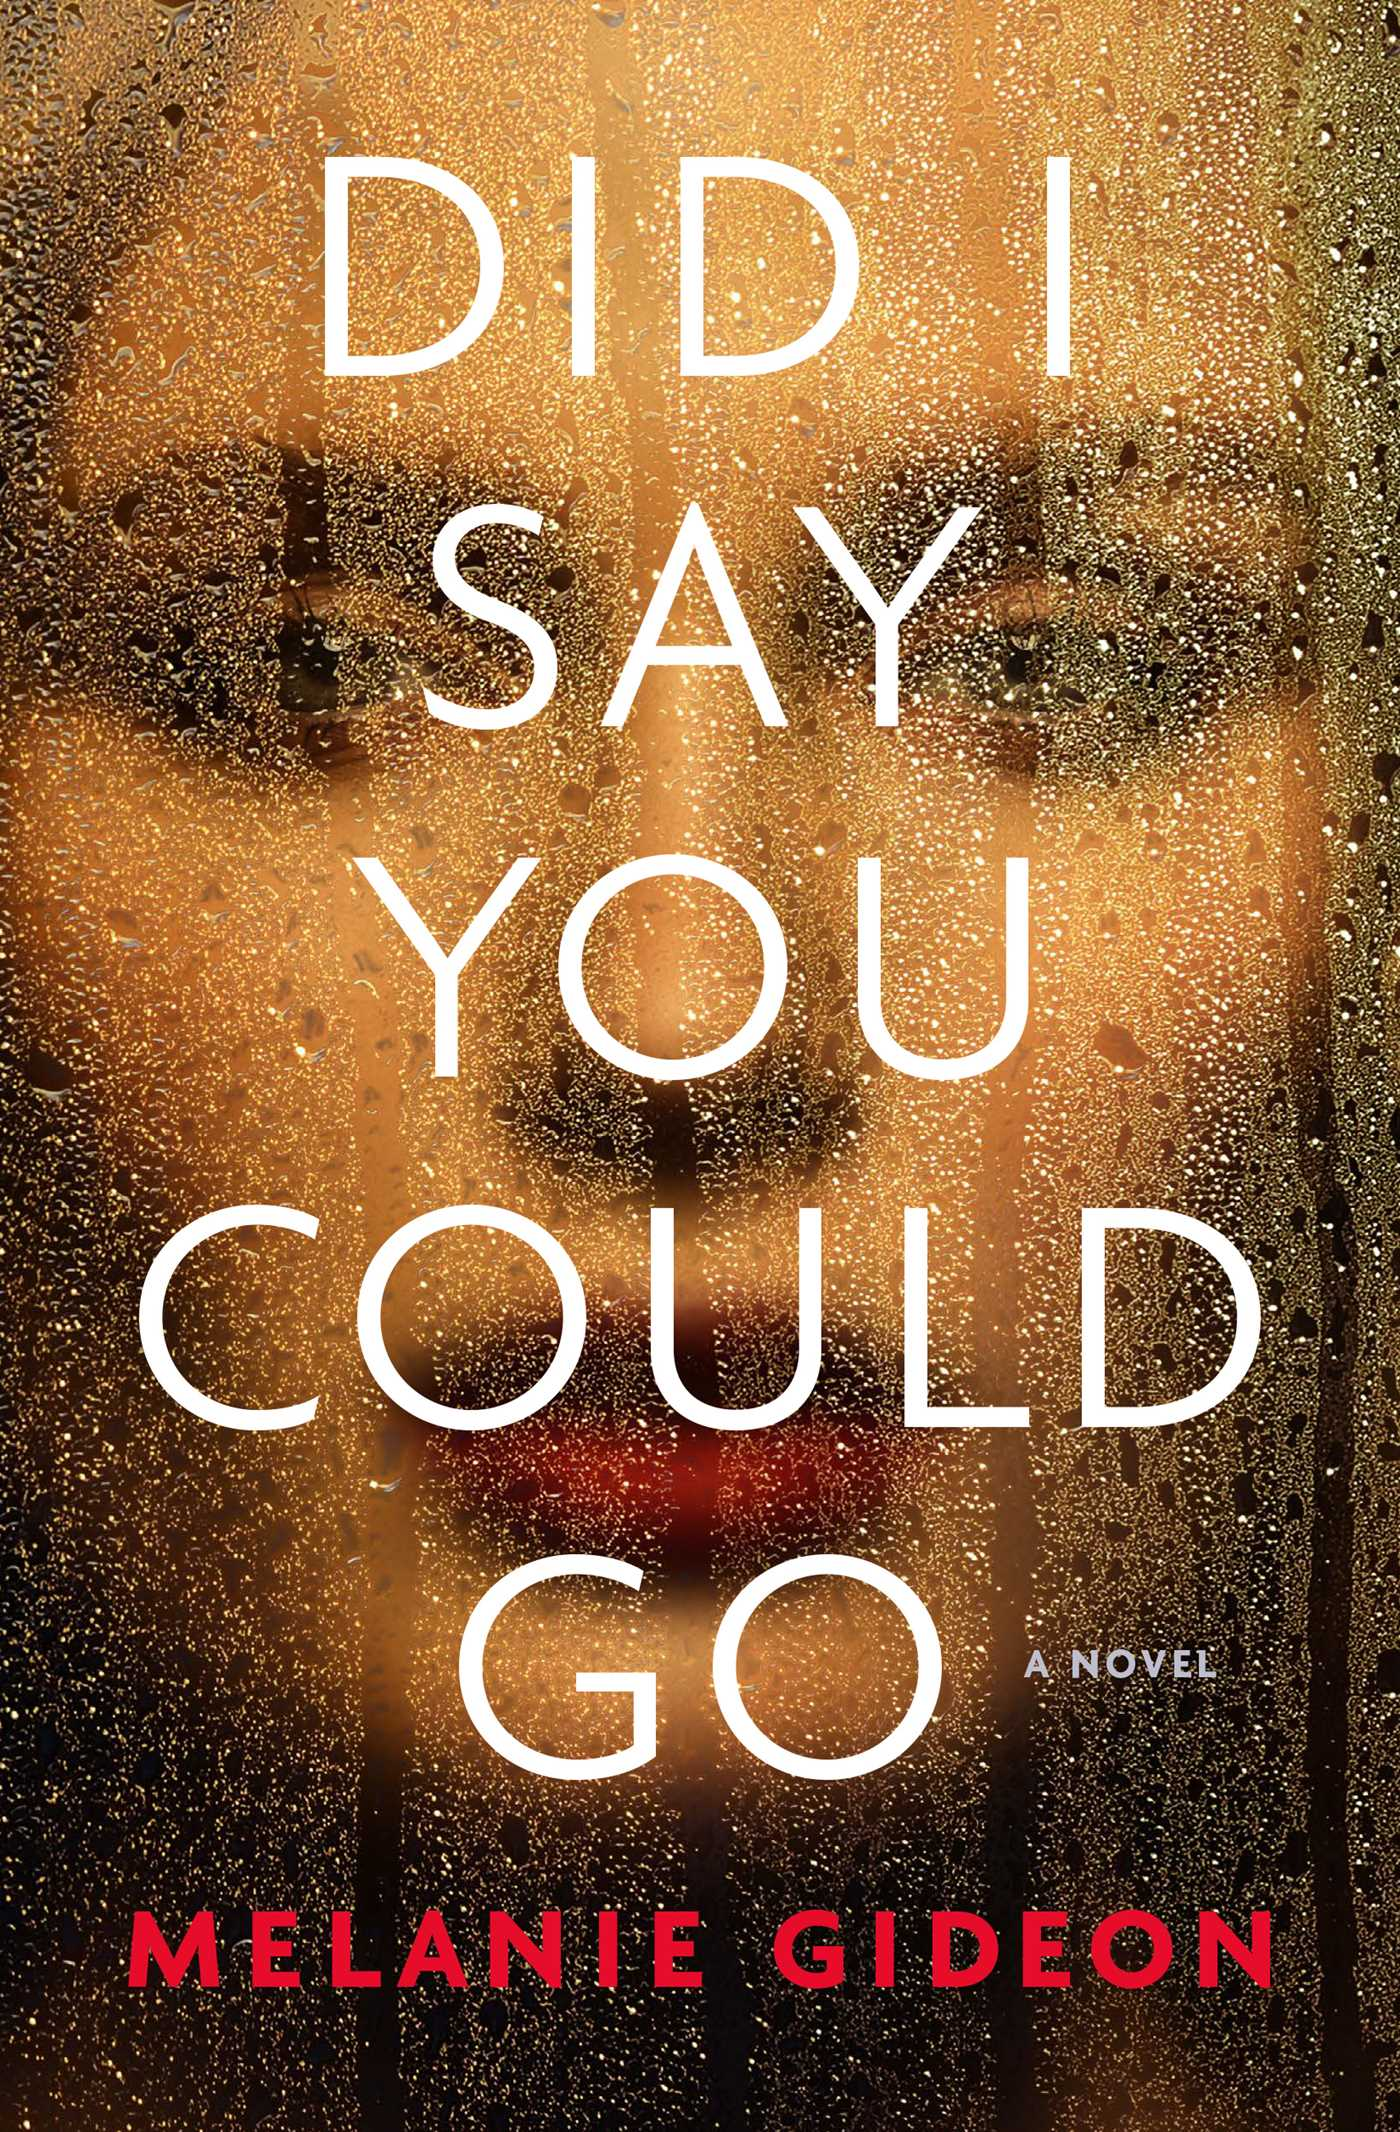 When Will Did I Say You Could Go Release? Melanie Gideon 2021 New Releases